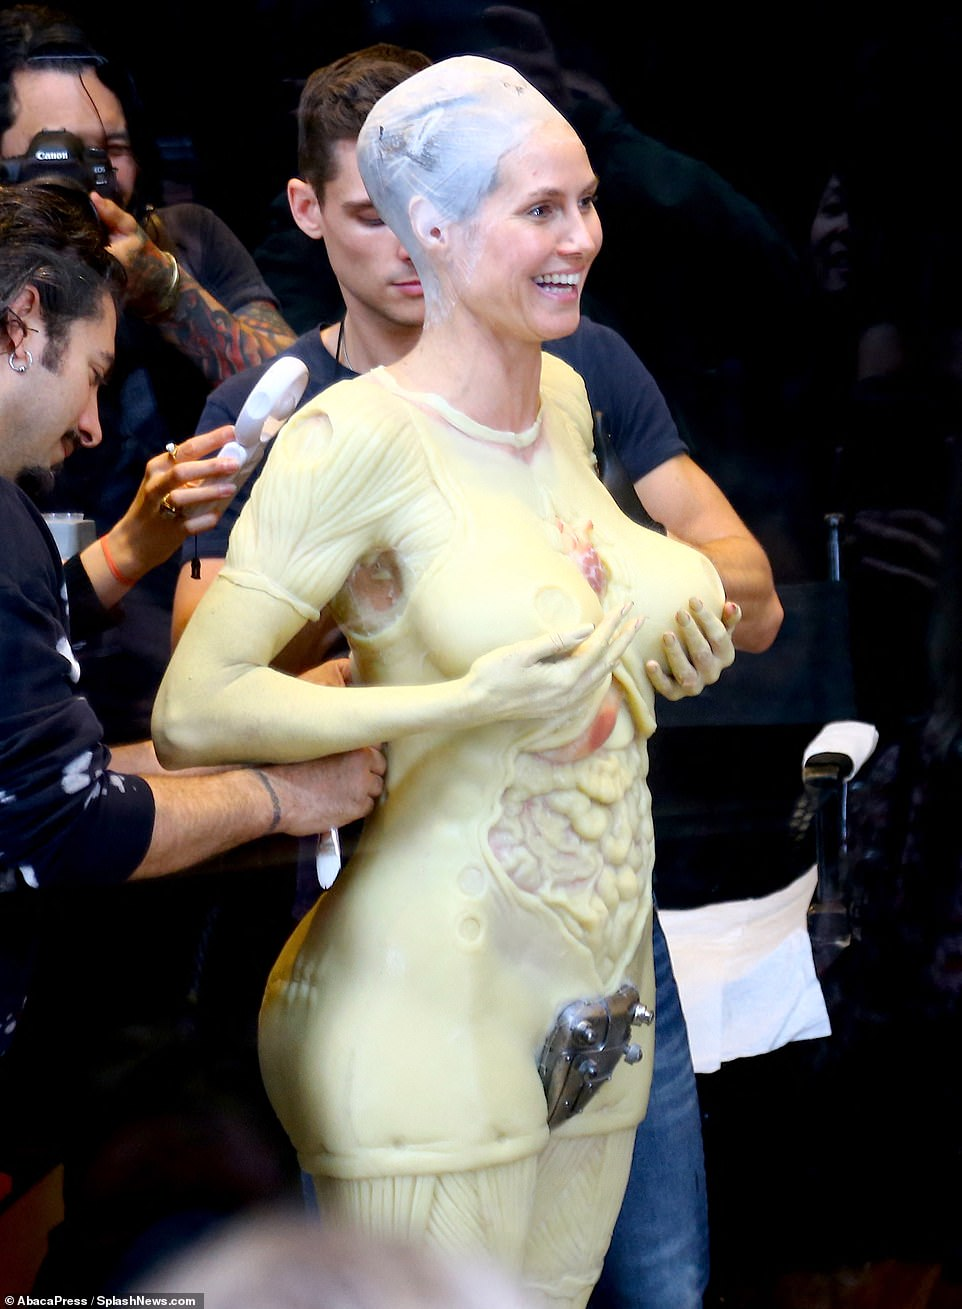 Is this ok? She touched her fake breasts and smiled while her crew worked on her